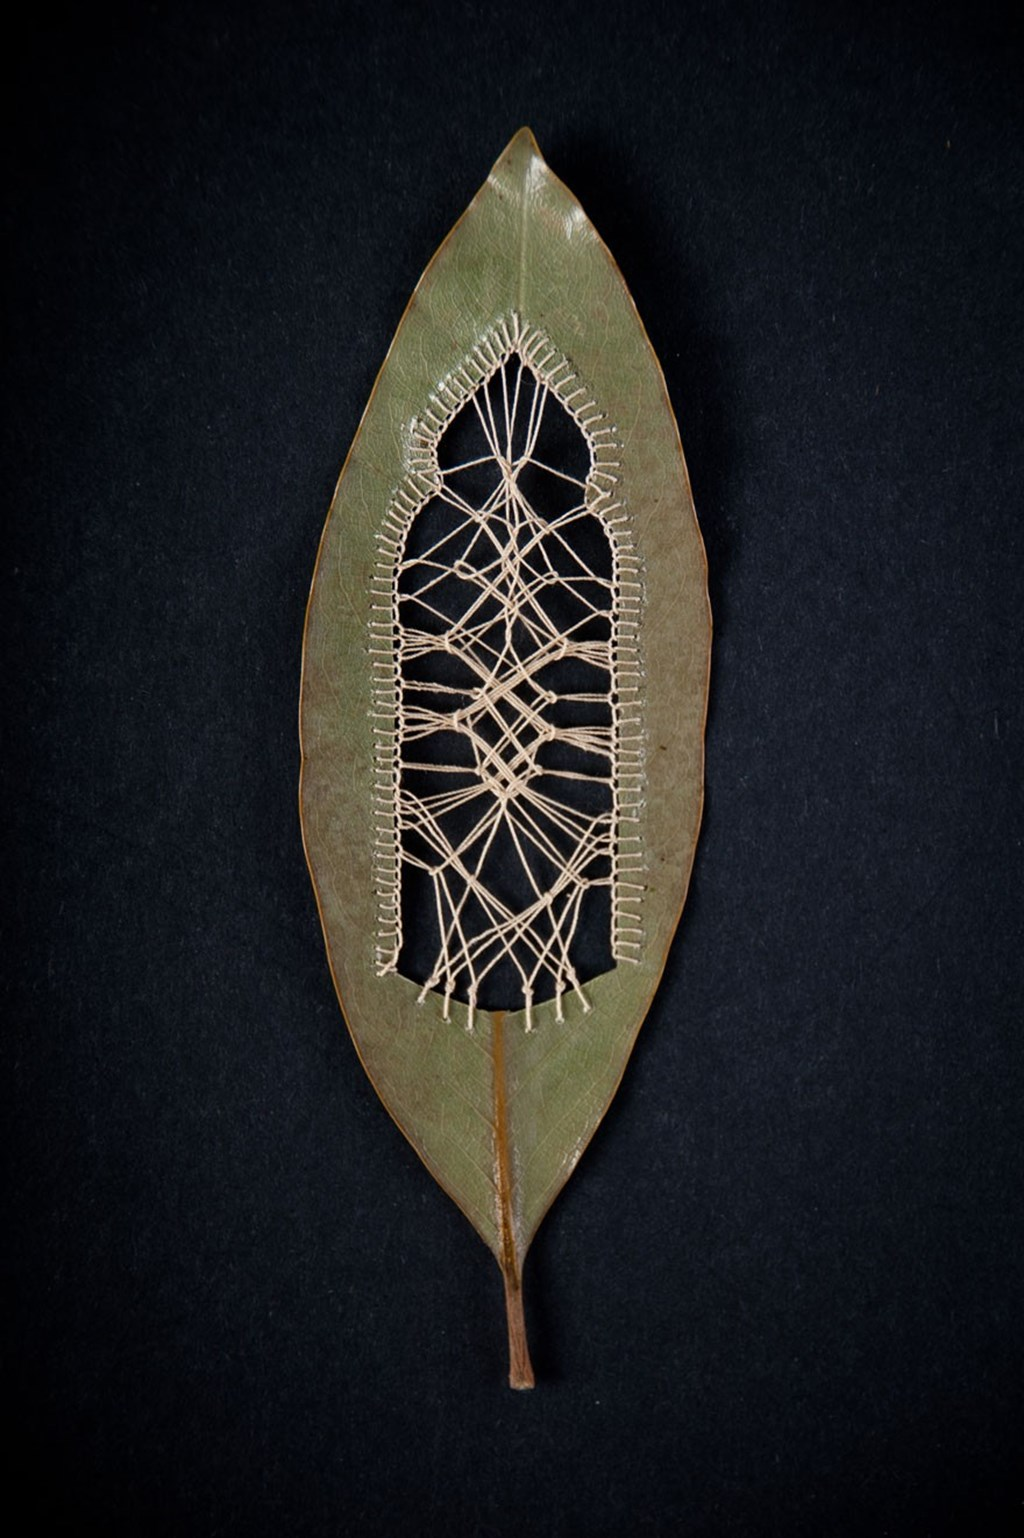 Leaf Art By Hillary Fayle 13